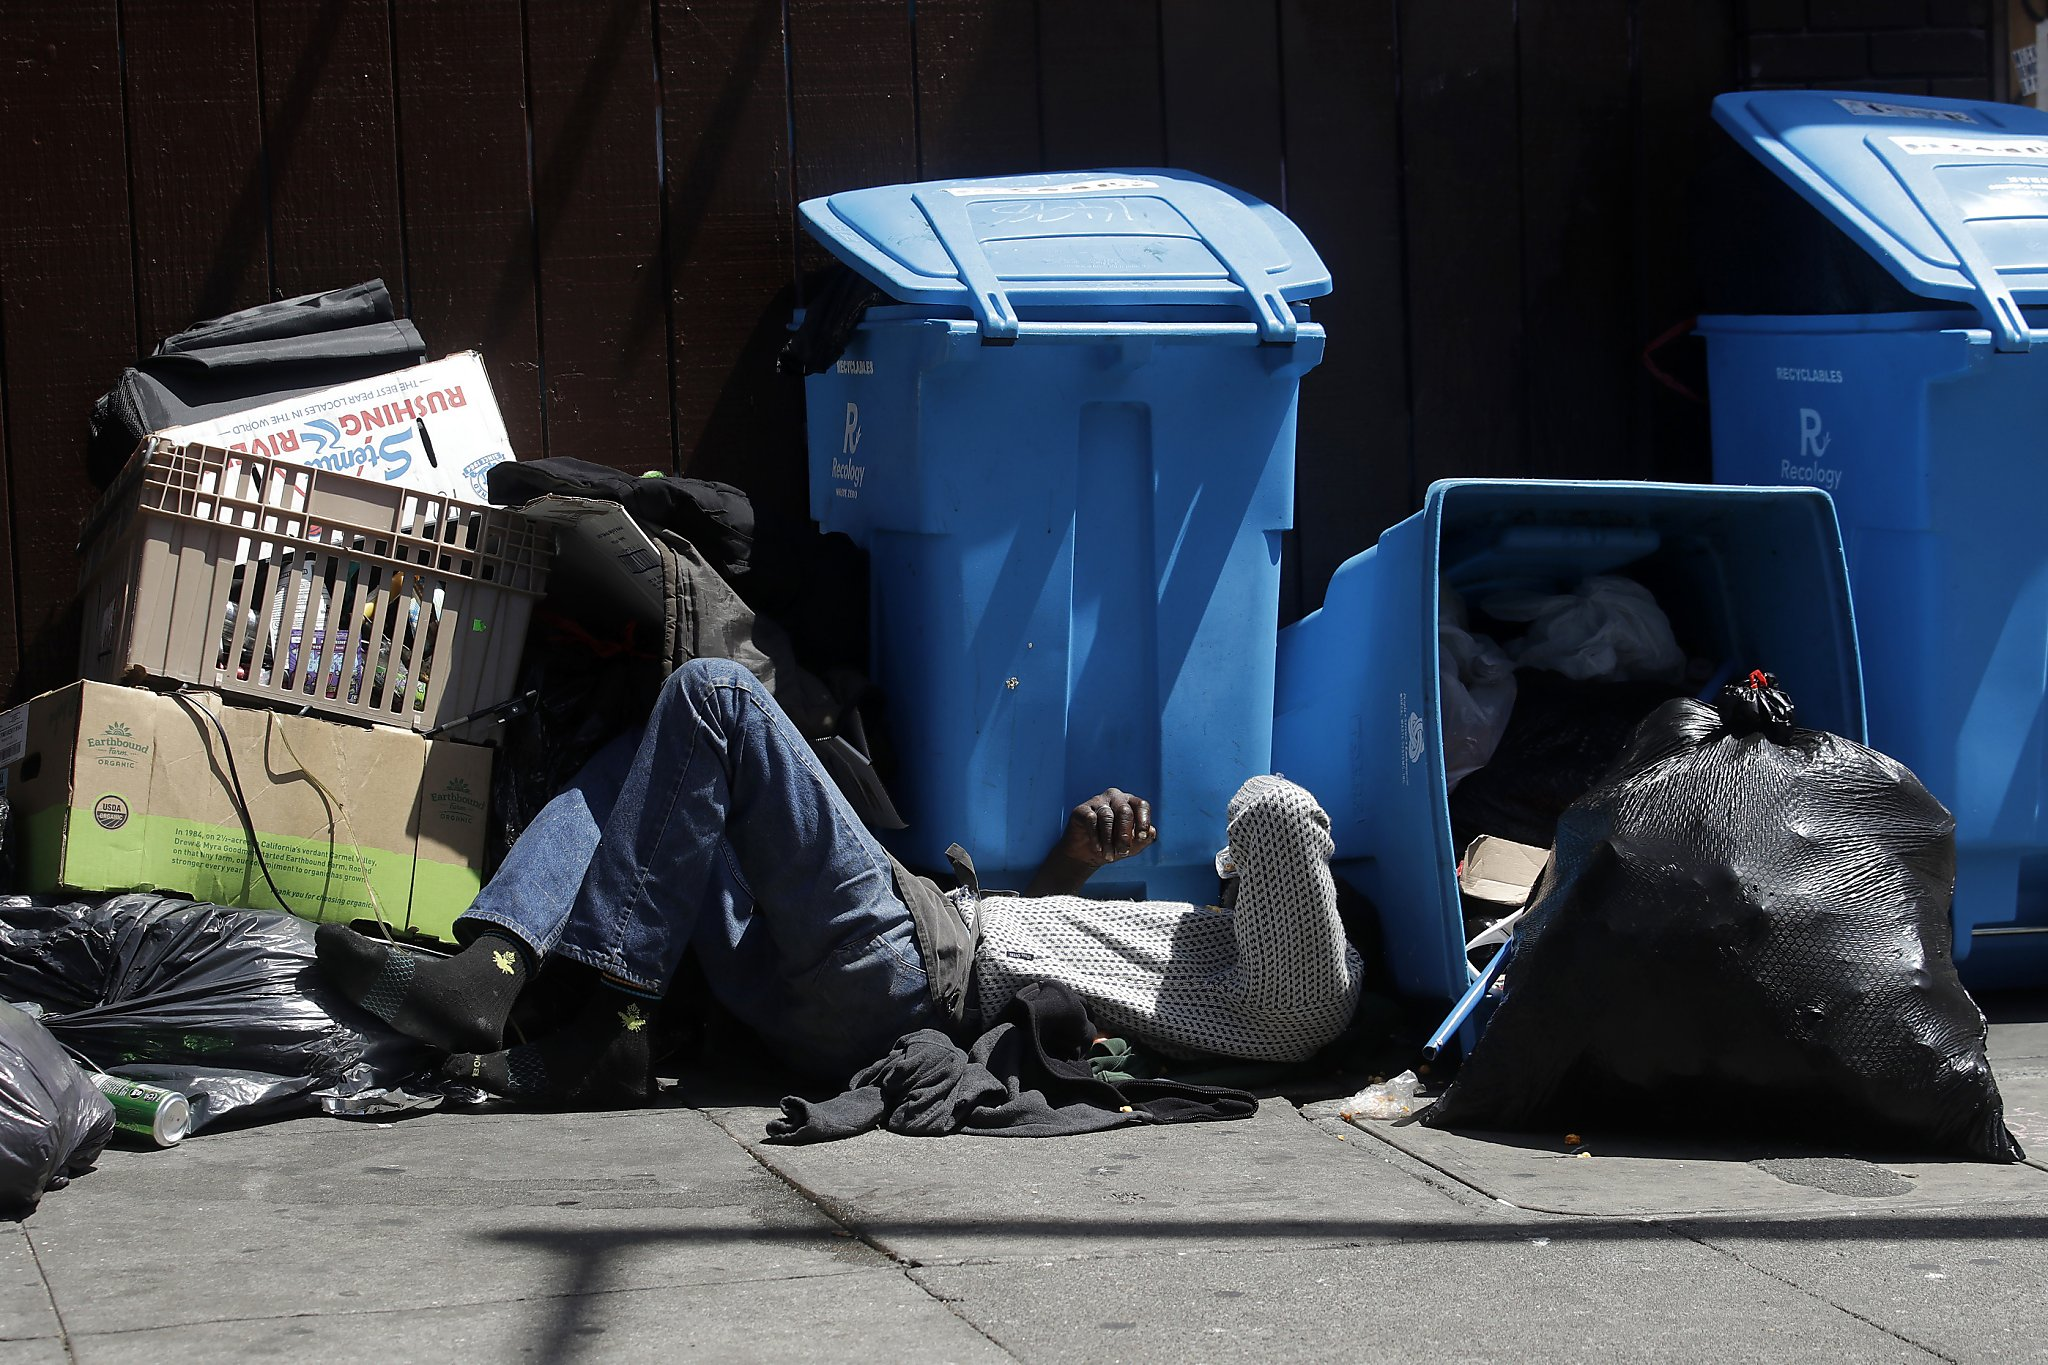 U.S. Department of Housing and Urban Development: Trump fights against proven homeless policy in...